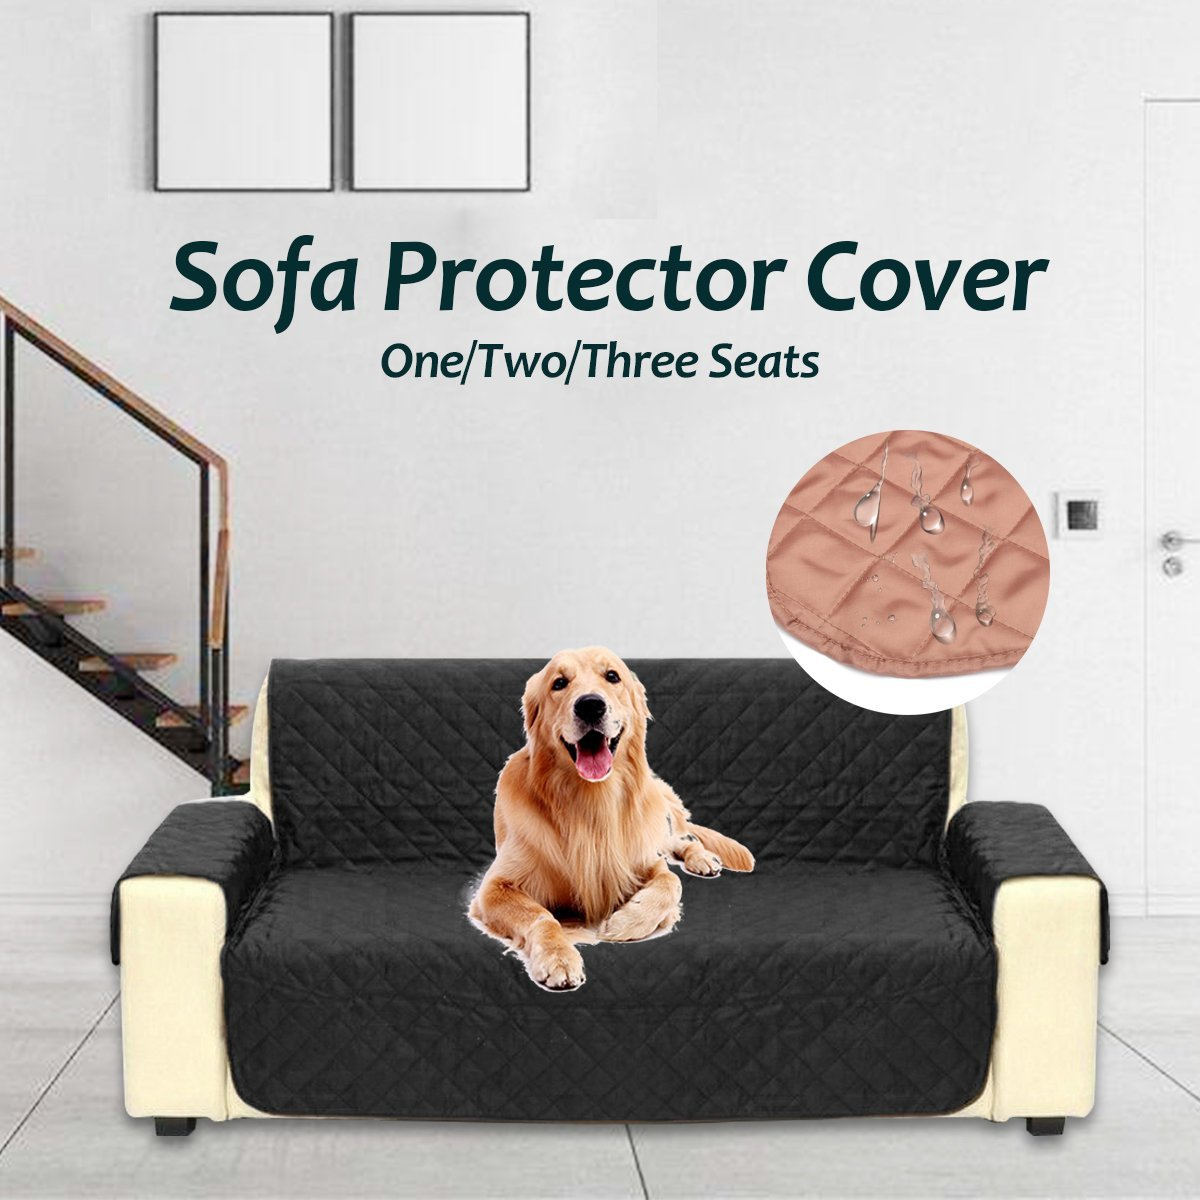 Waterproof Quilted Sofa Covers for Dogs Pets Kids Anti-Slip Couch Recliner Slipcovers 1/2/3 Seater - nayachic